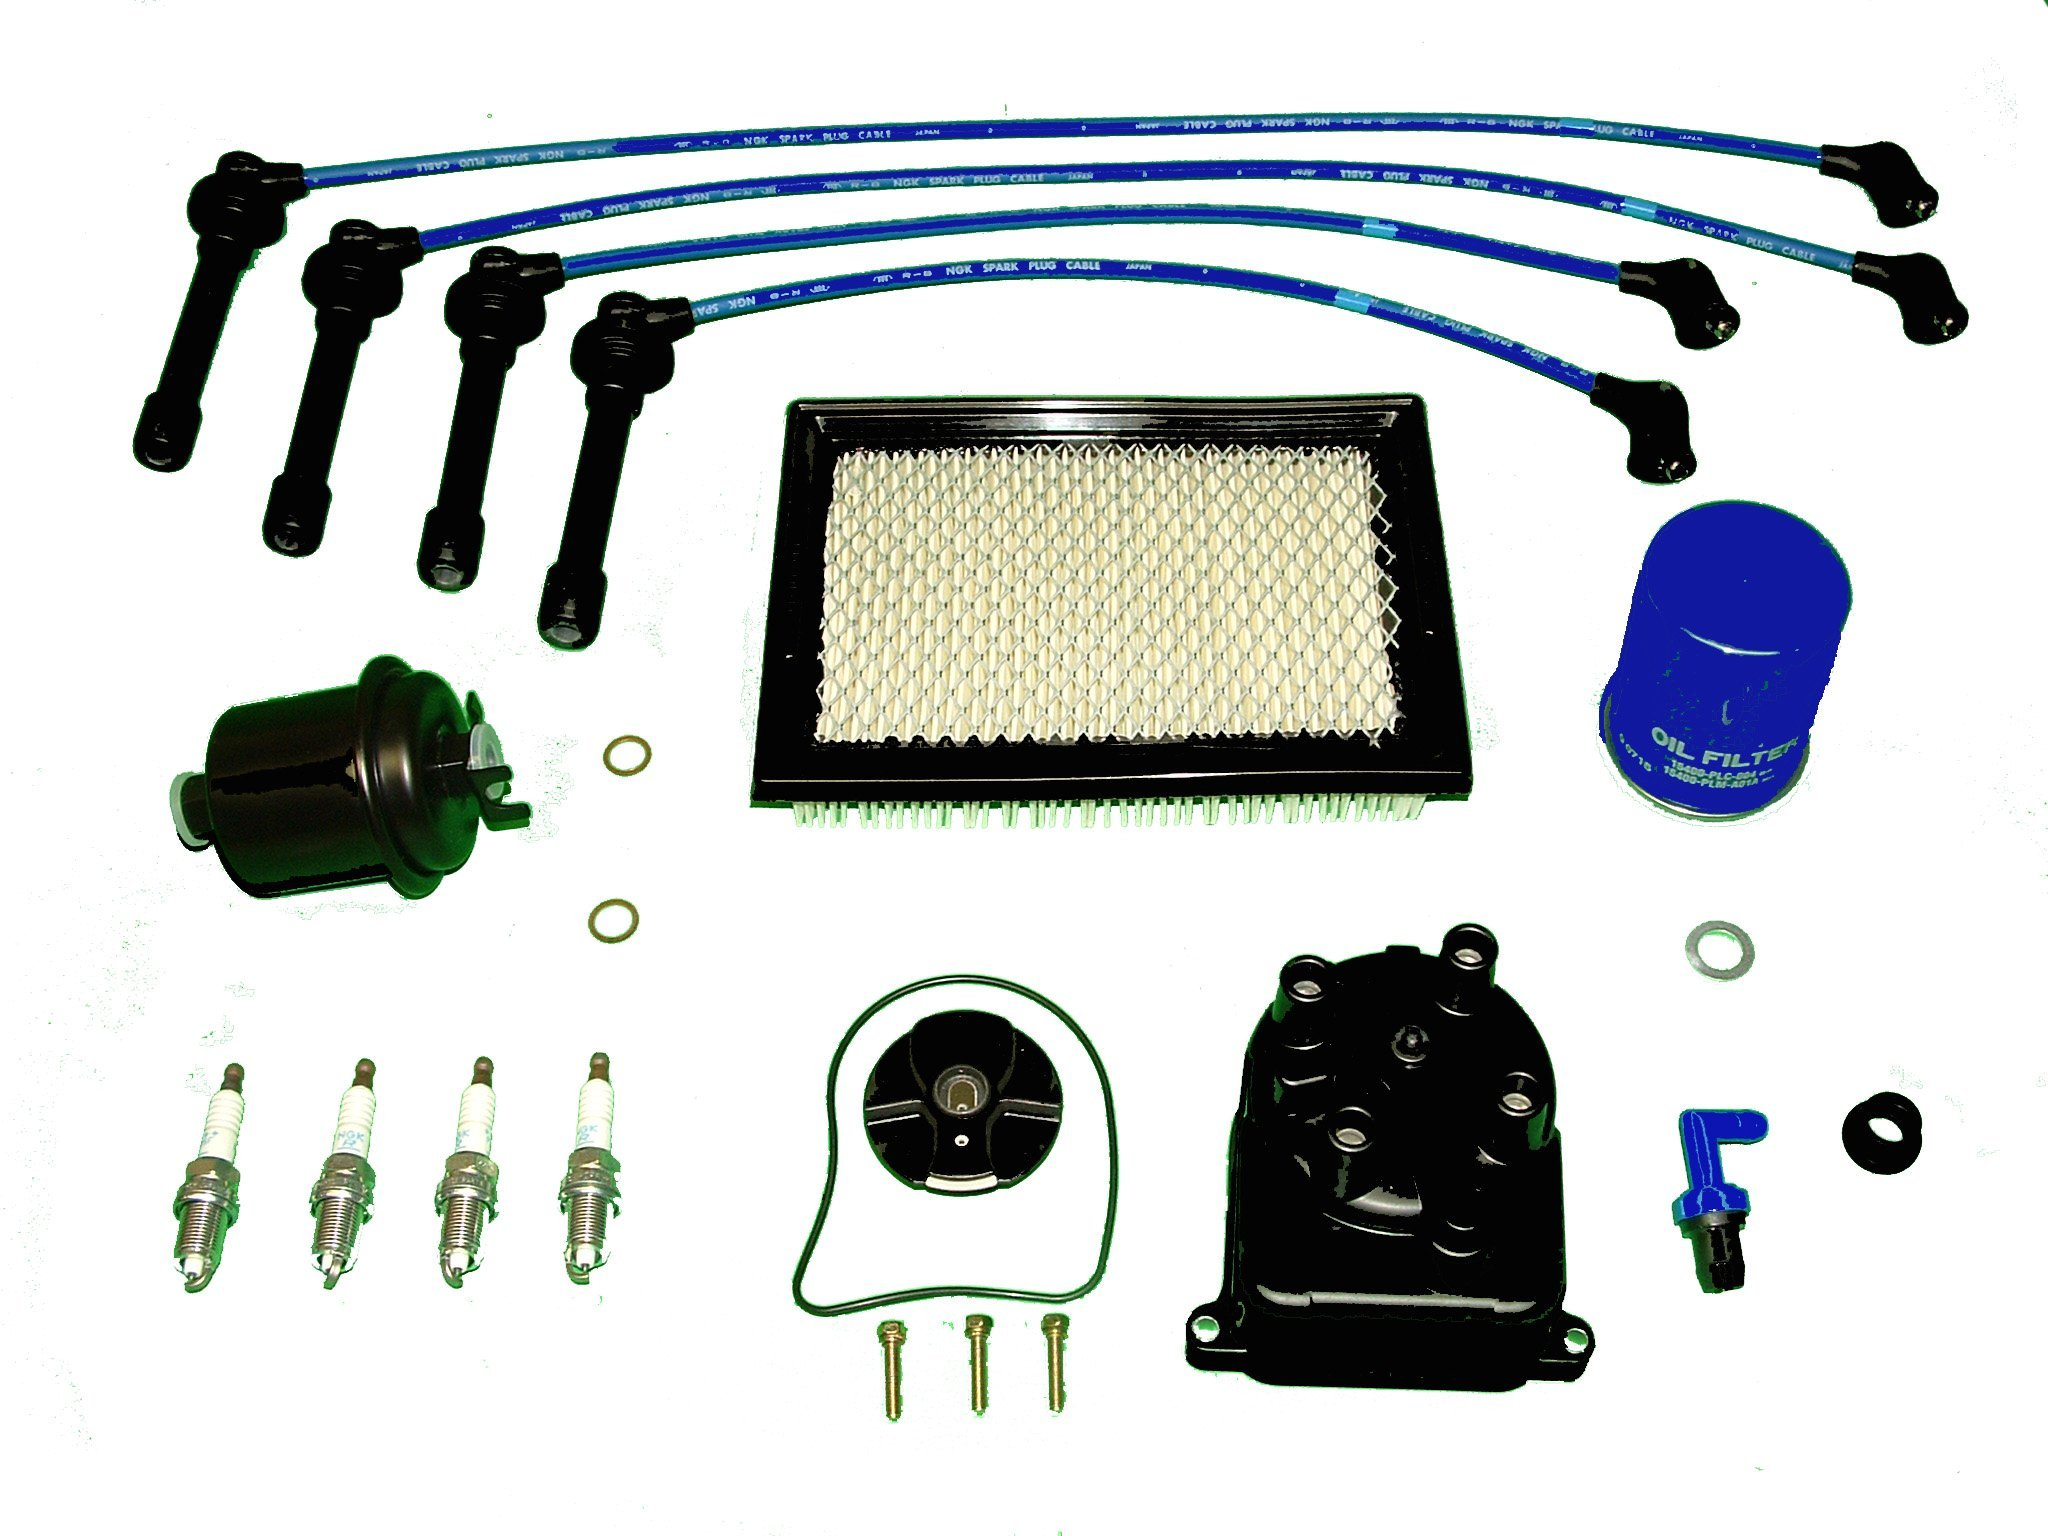 Amazon.com: Tune Up Kit Honda Civic CX DX LX 1996 to 2000 1.6L: Automotive